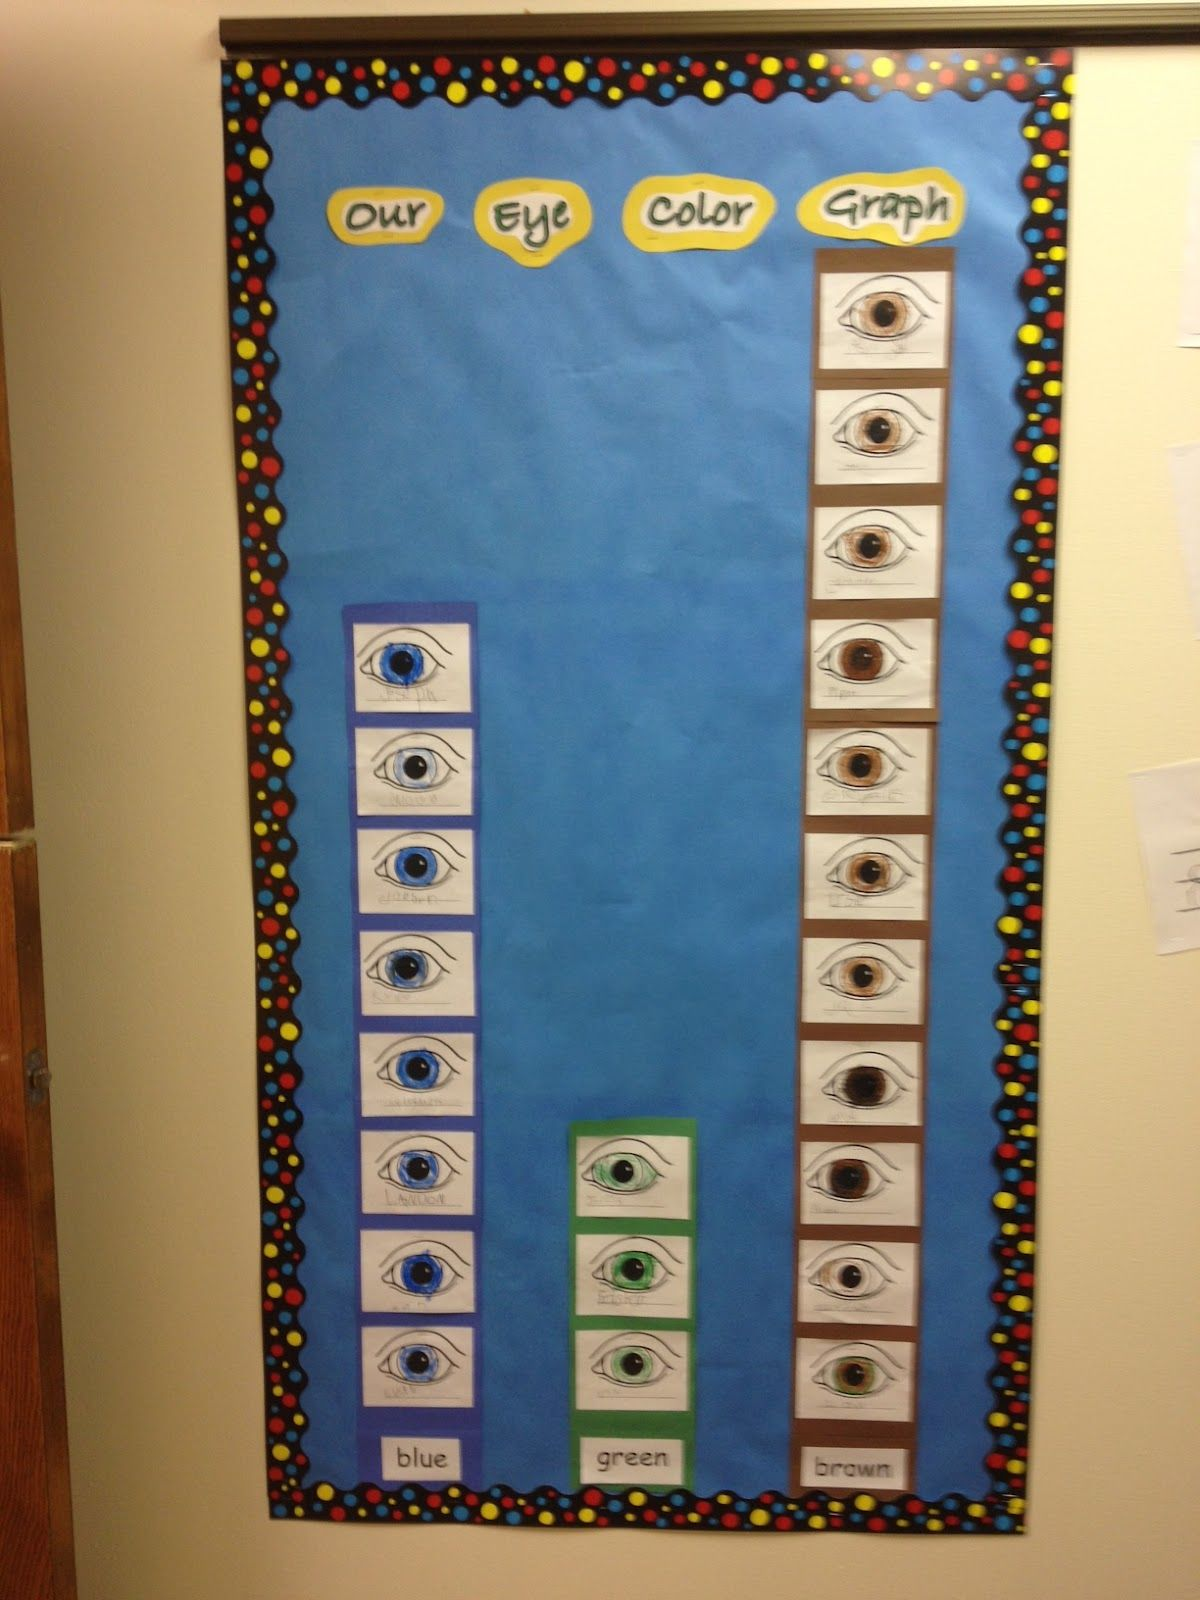 All About Me\'.... Eye graph! | All about me | Pinterest | Maths, Eye ...